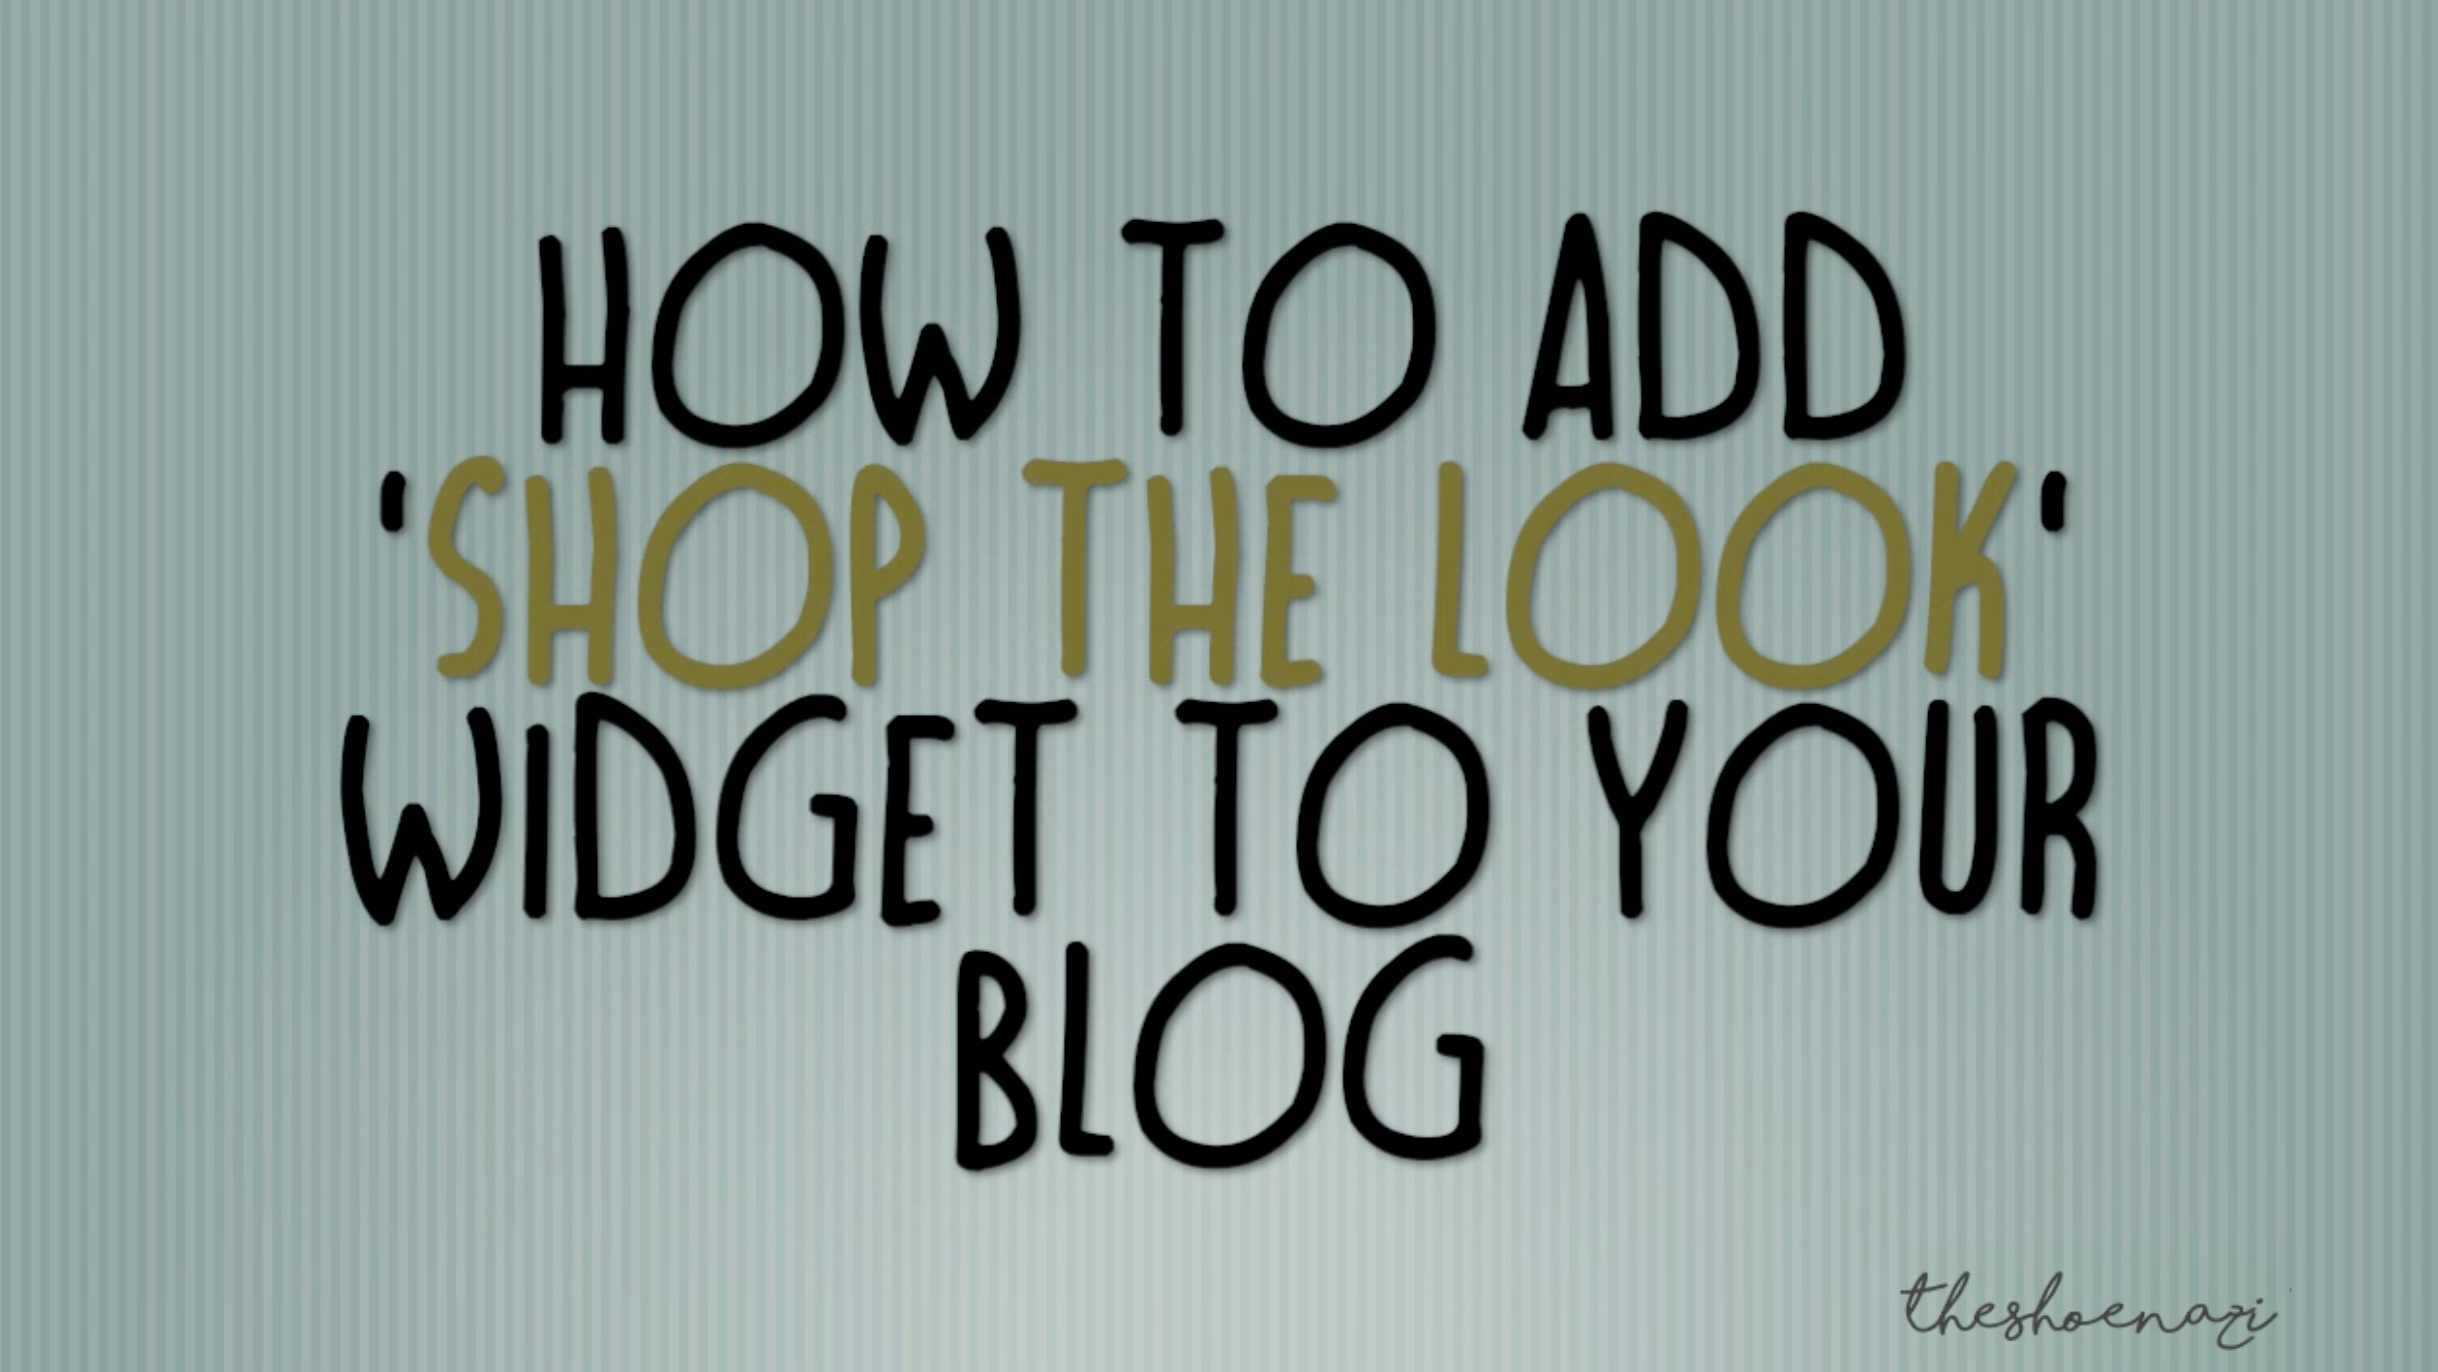 how-to-add-shop-look-widget-to-your-blog